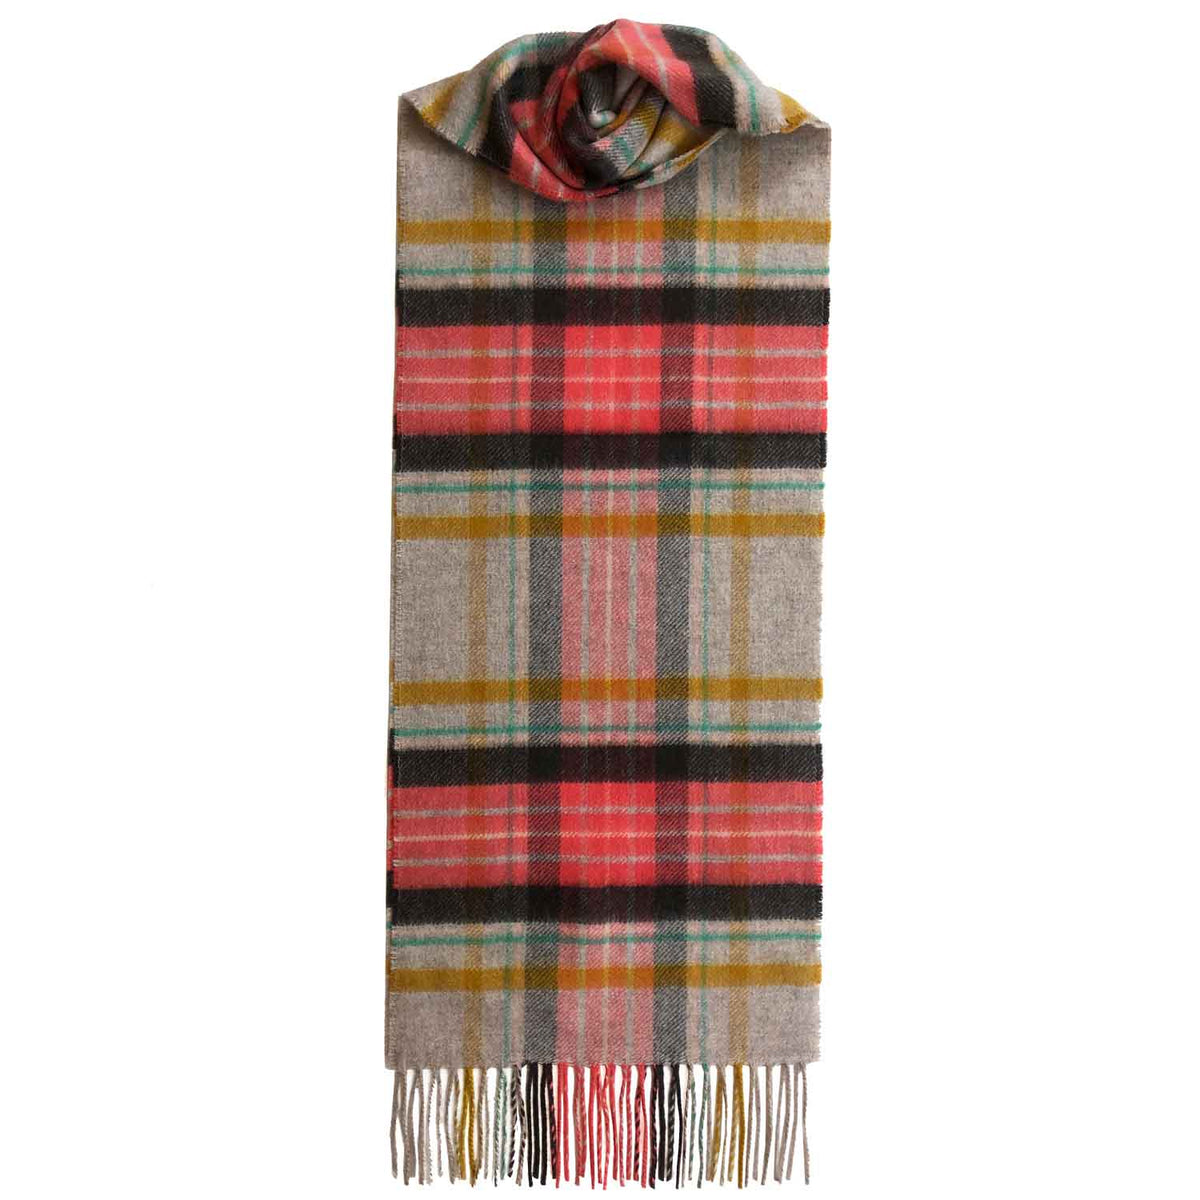 Lomond Cashmere | Beige Yellow Coral | Check Cashmere Scarf With Fringes | Made in Scotland | Shop at The Cashmere Choice | London